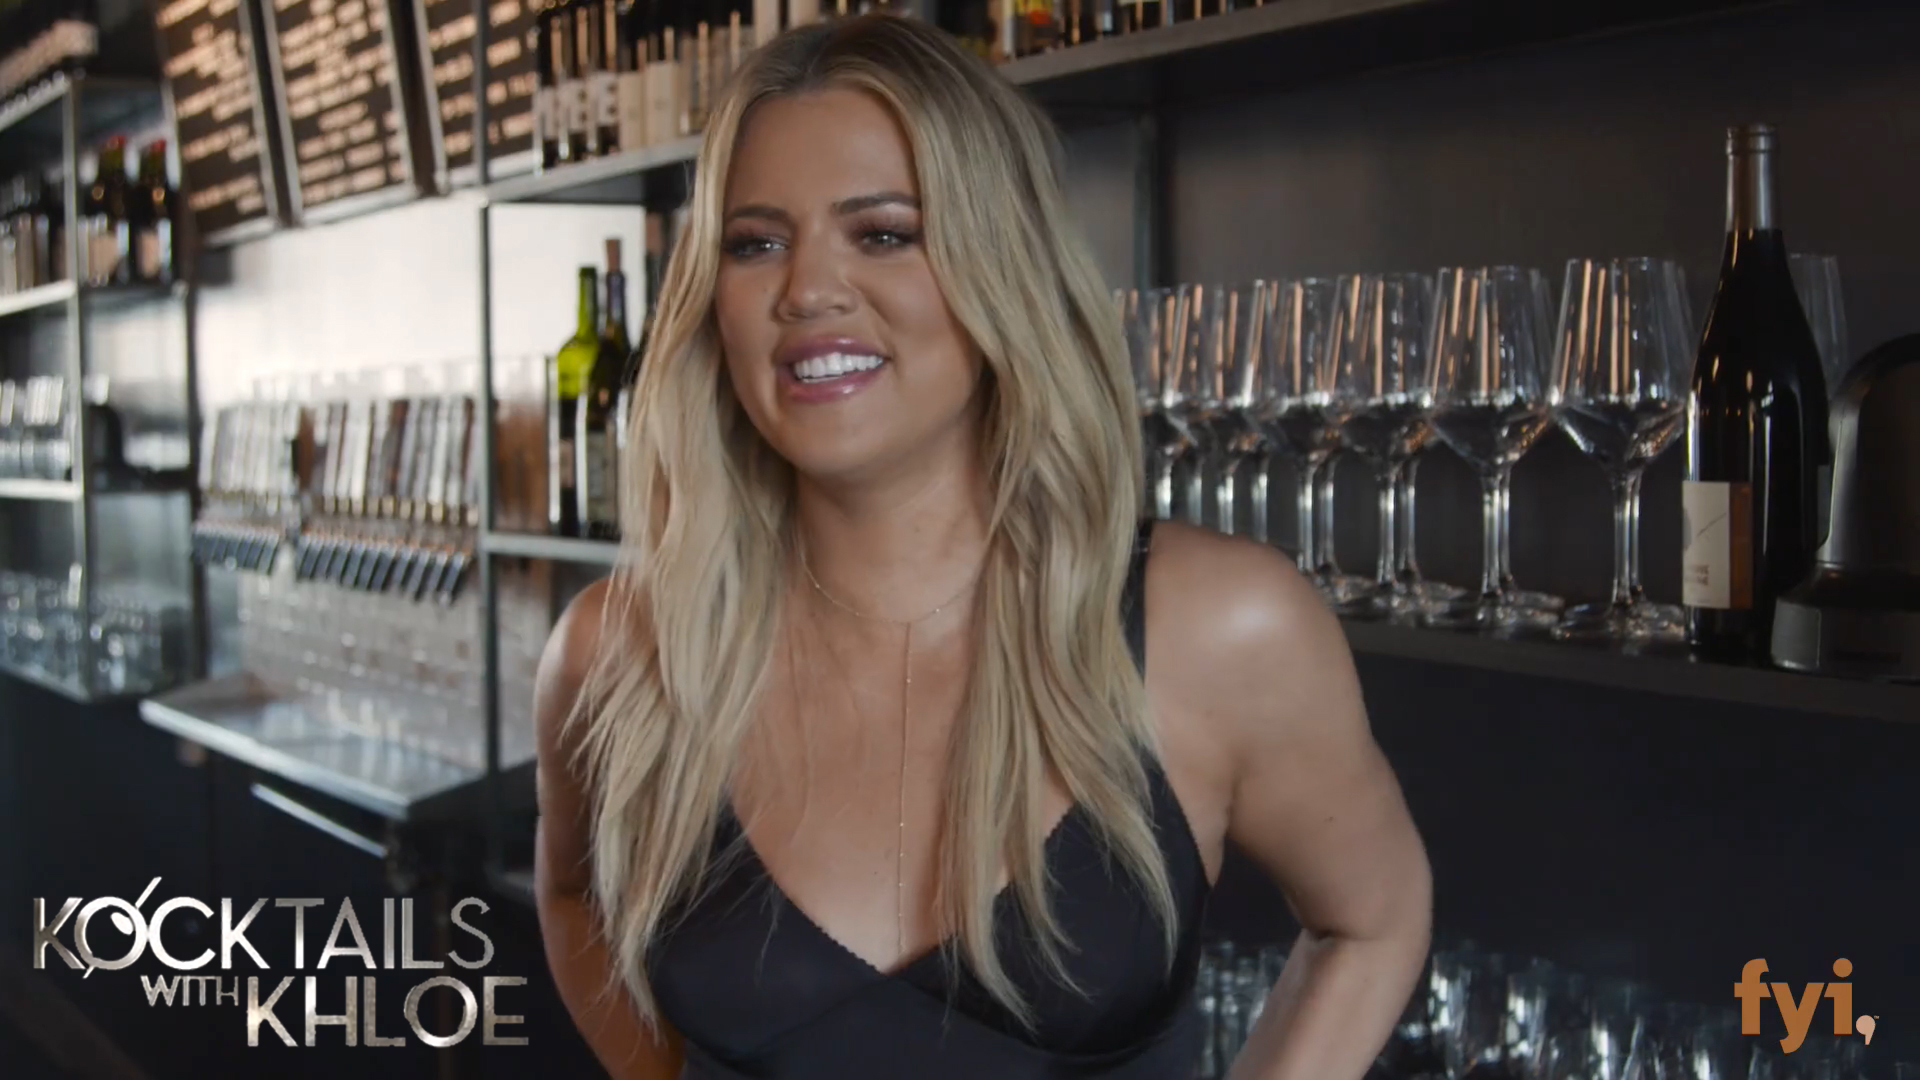 Kocktails With Khloe Kardashian New Website Cover Page